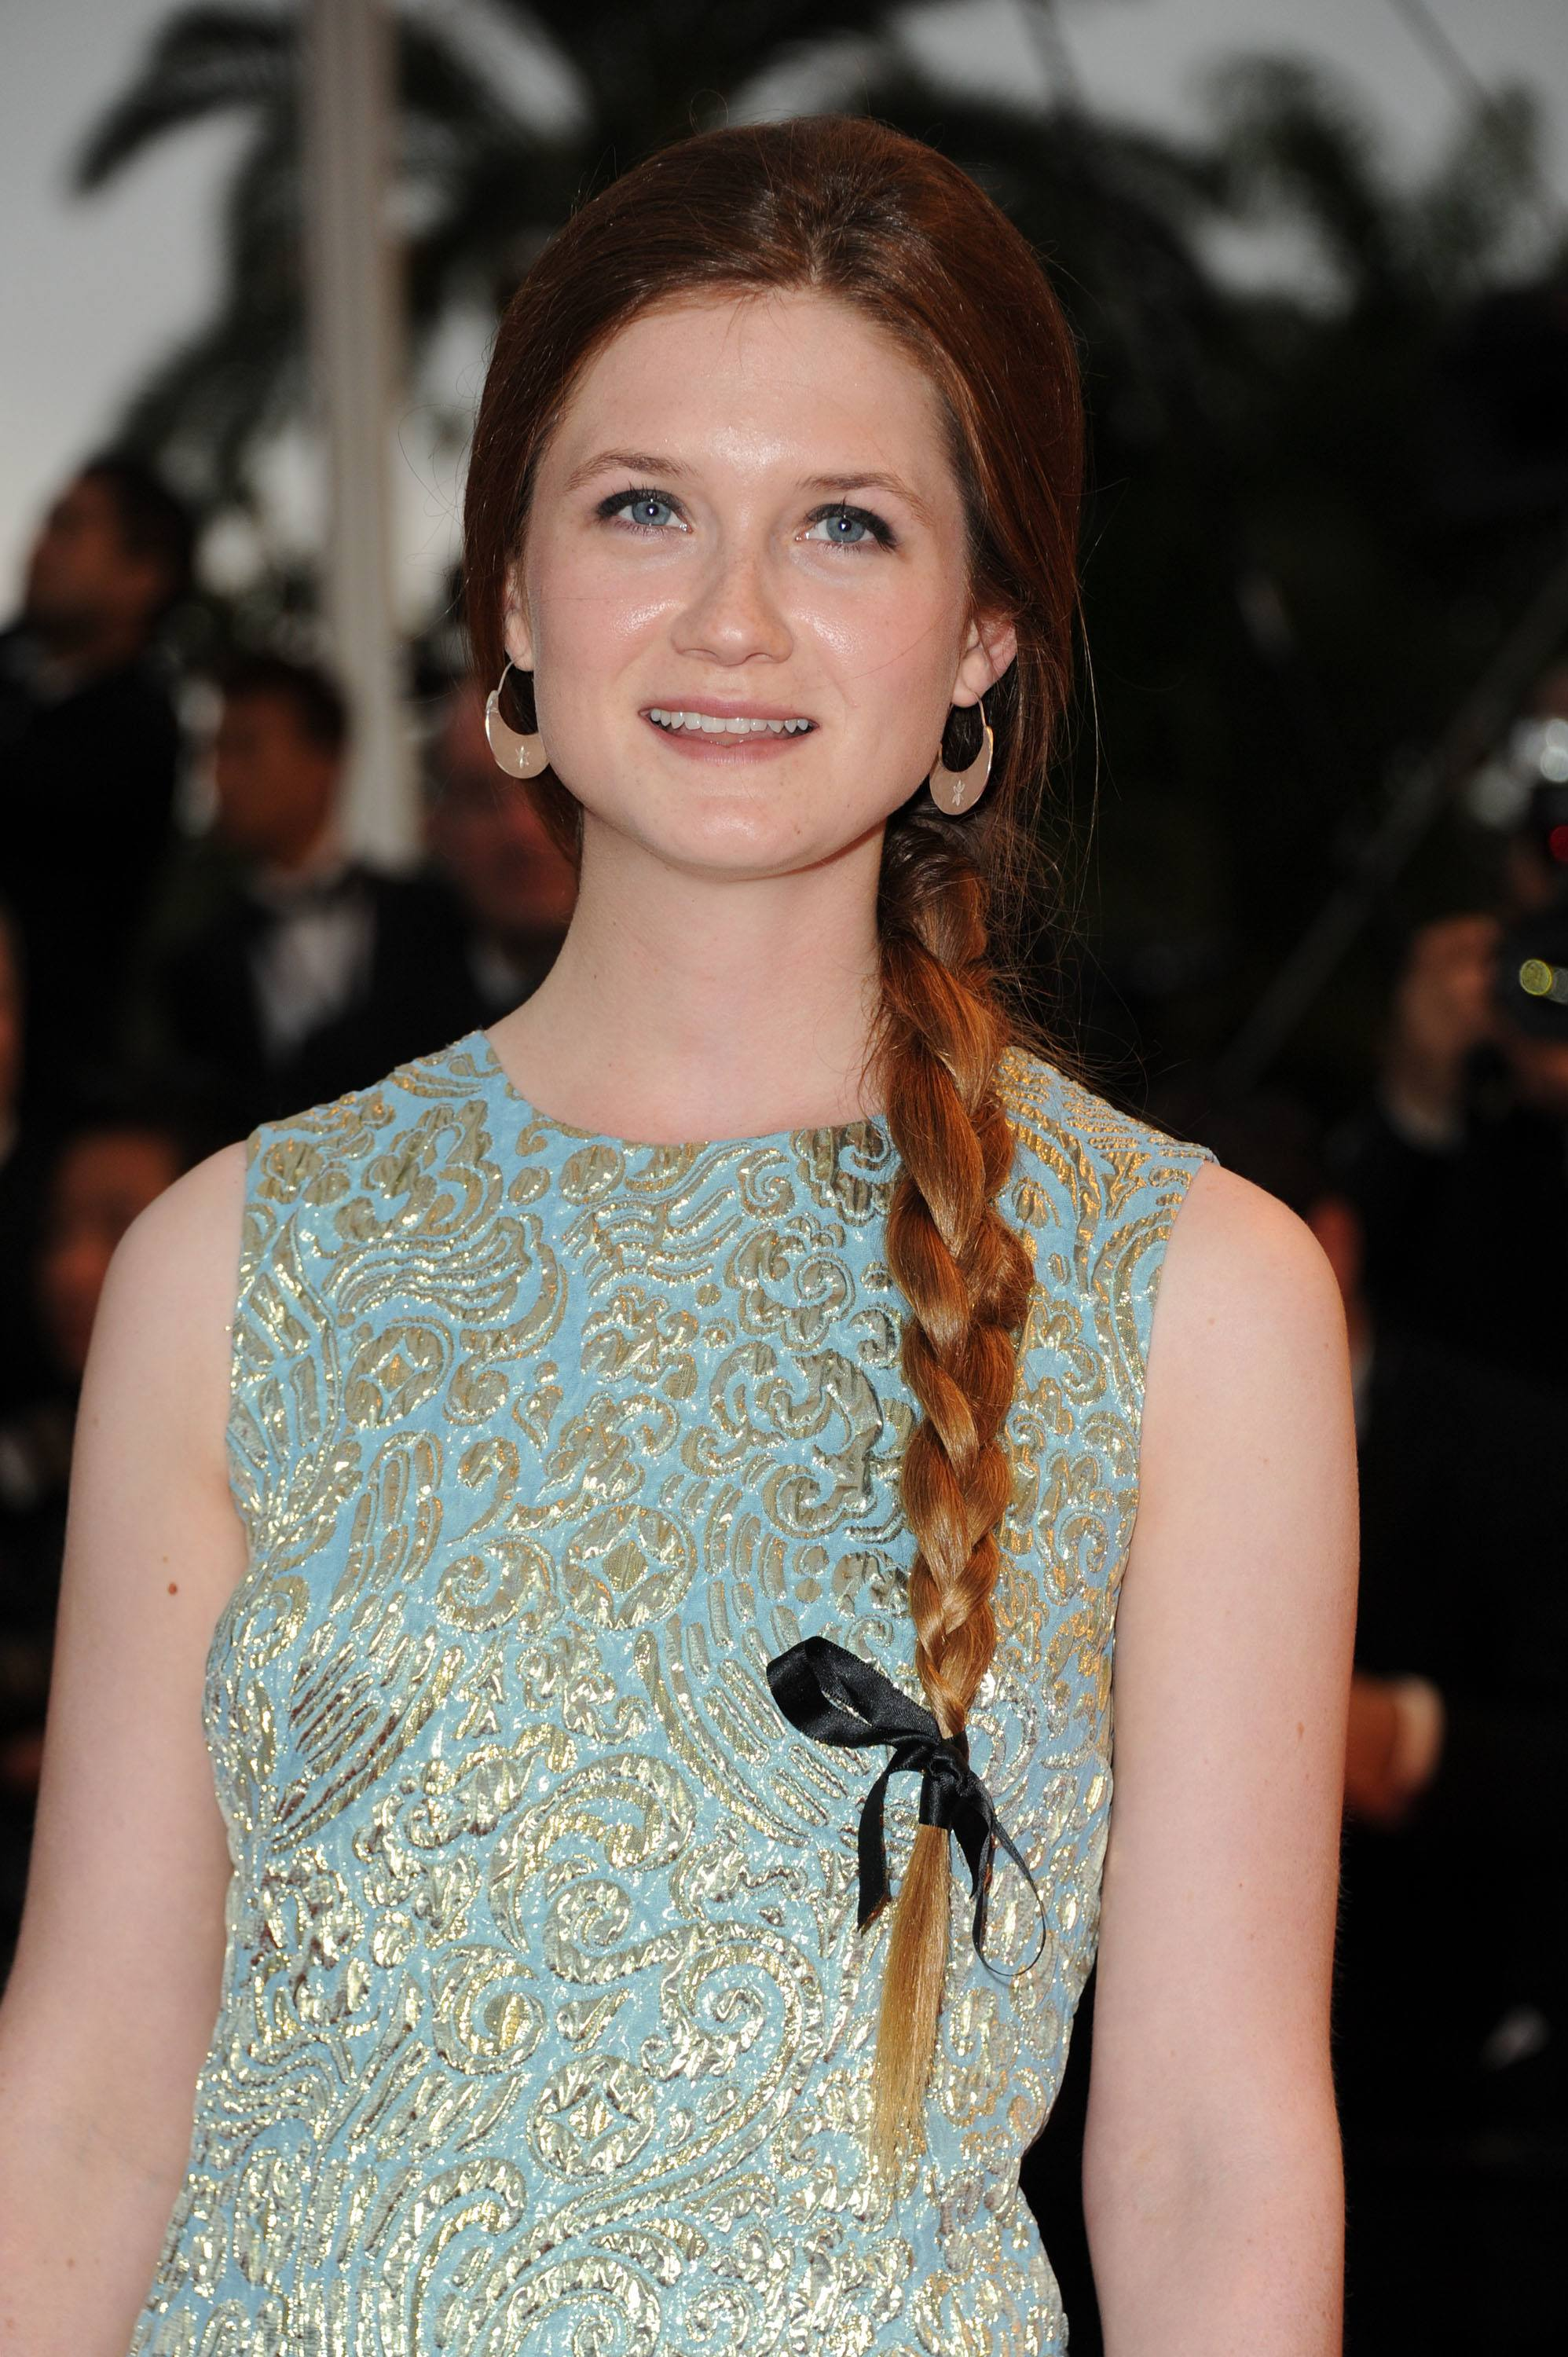 harry potter star bonnie wright